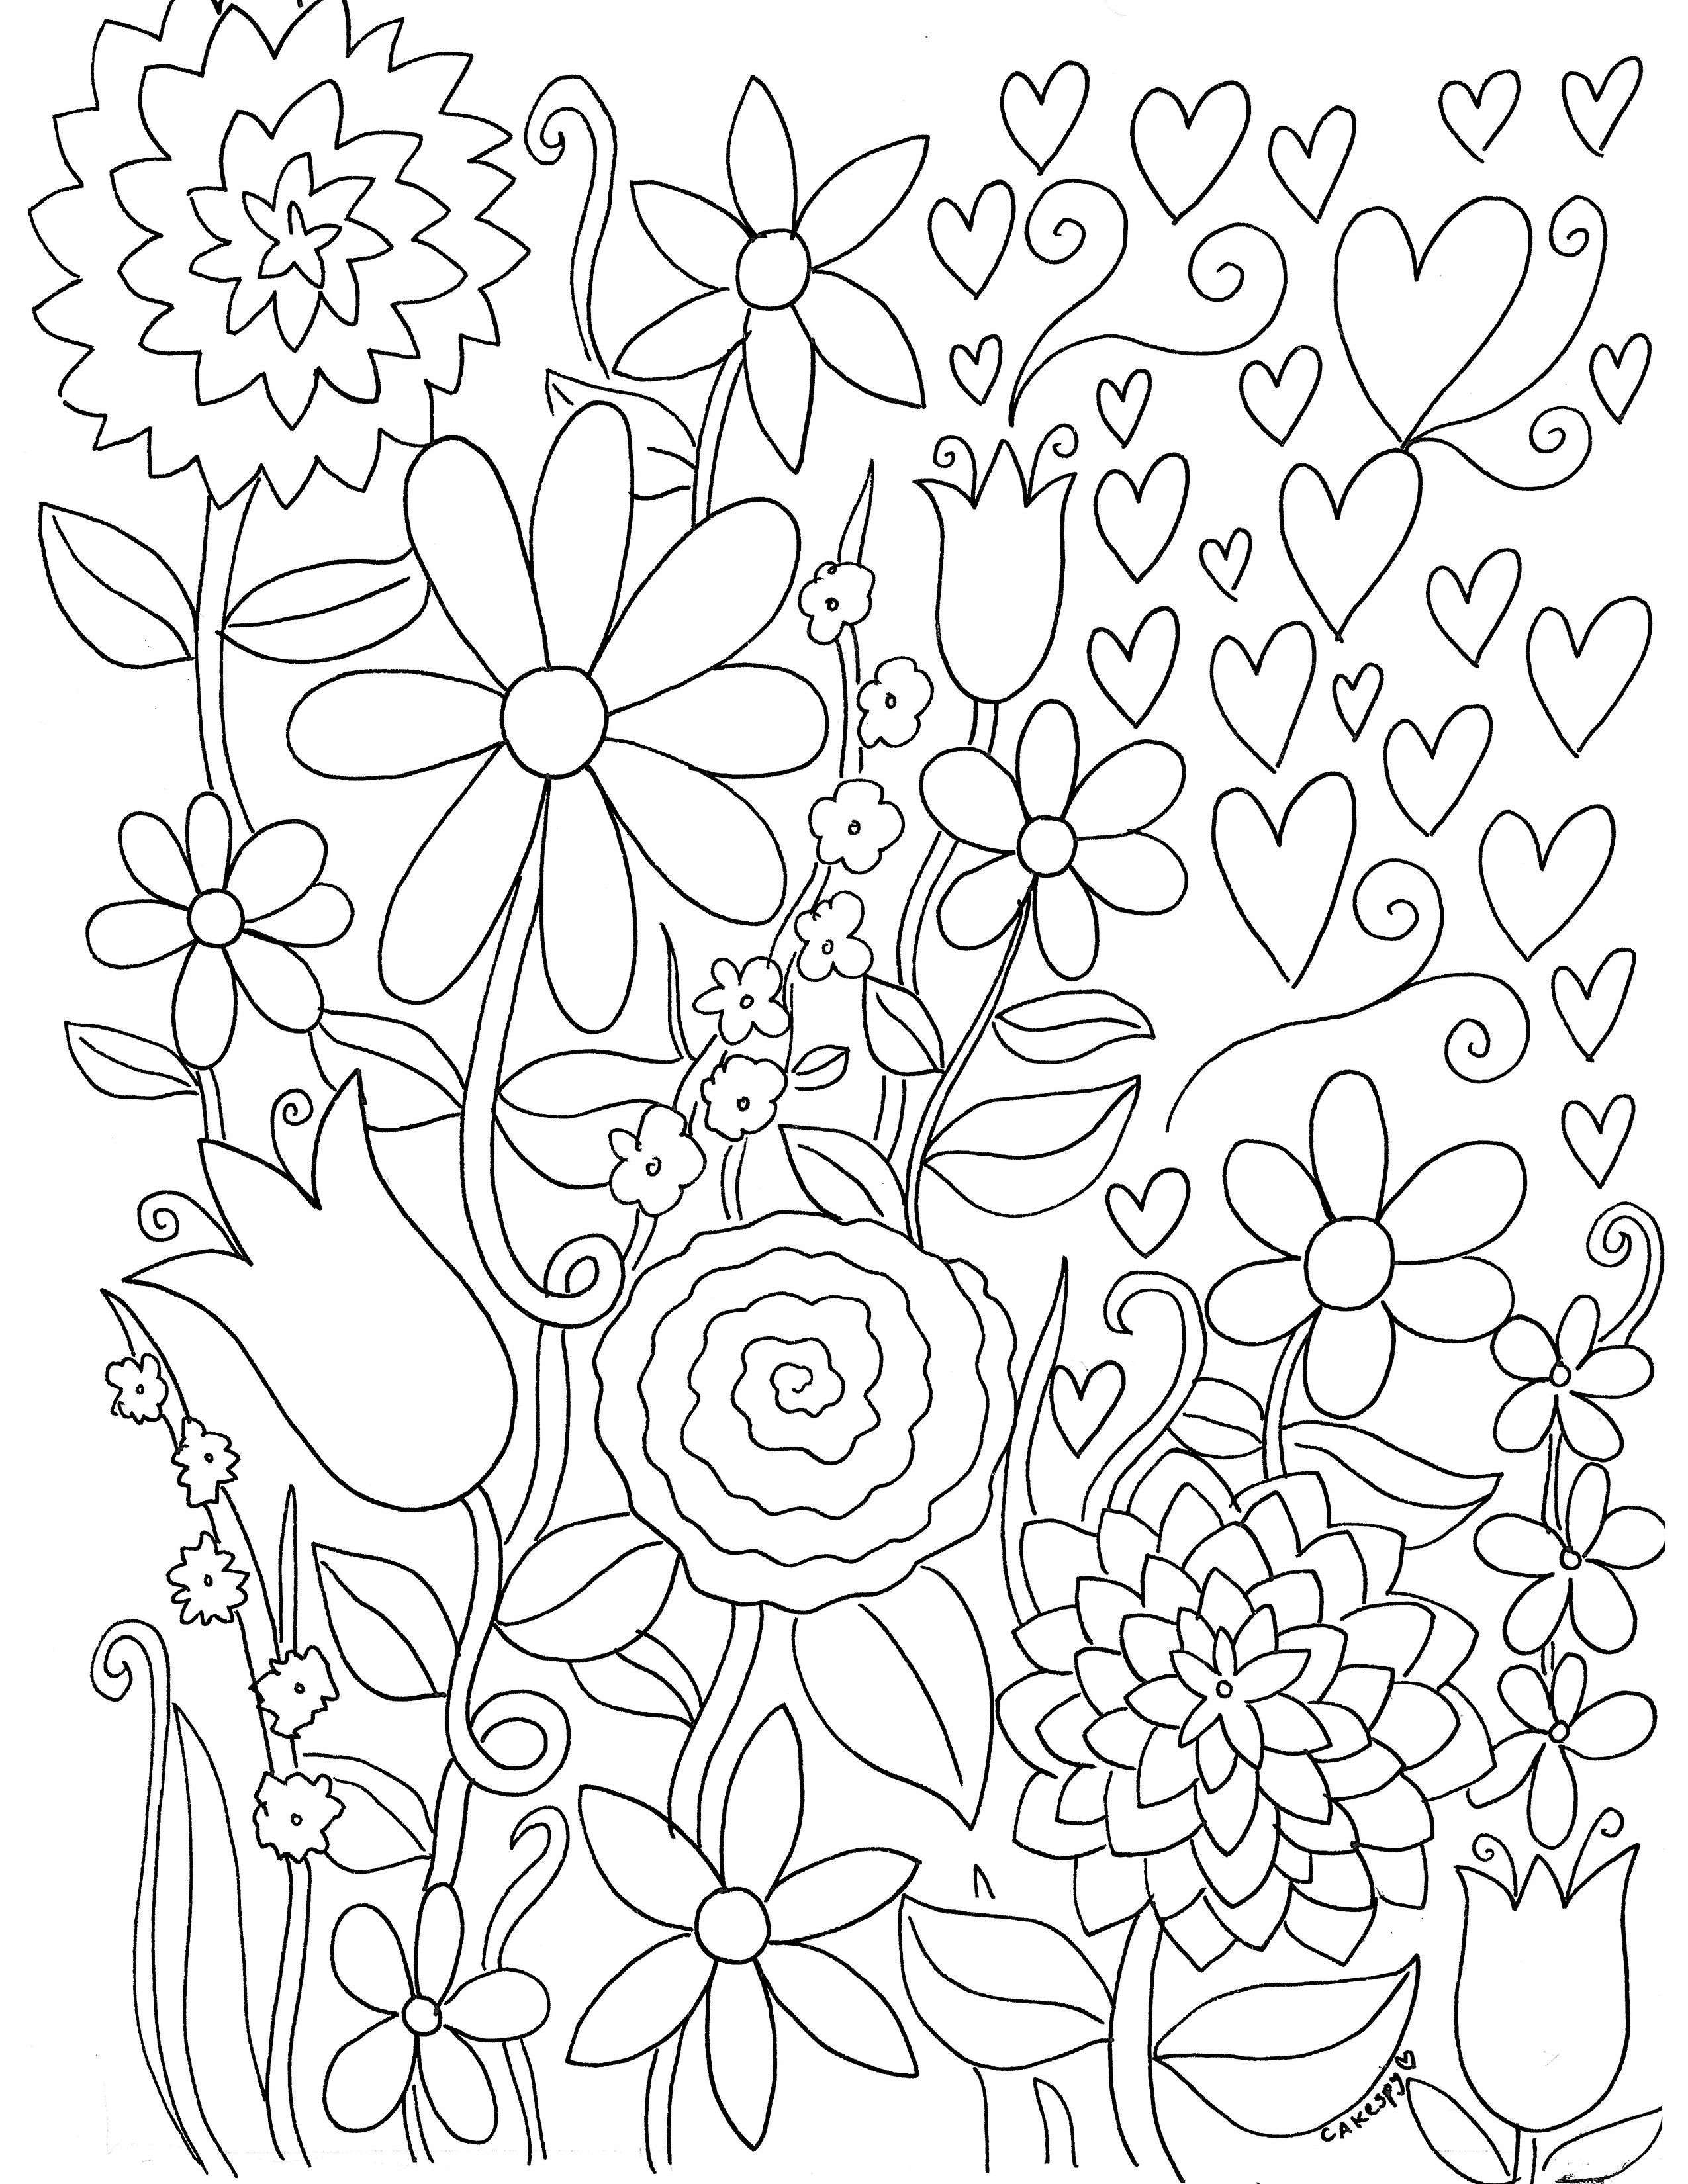 Adult Coloring Book Download  FREE Paint by Numbers for Adults Downloadable